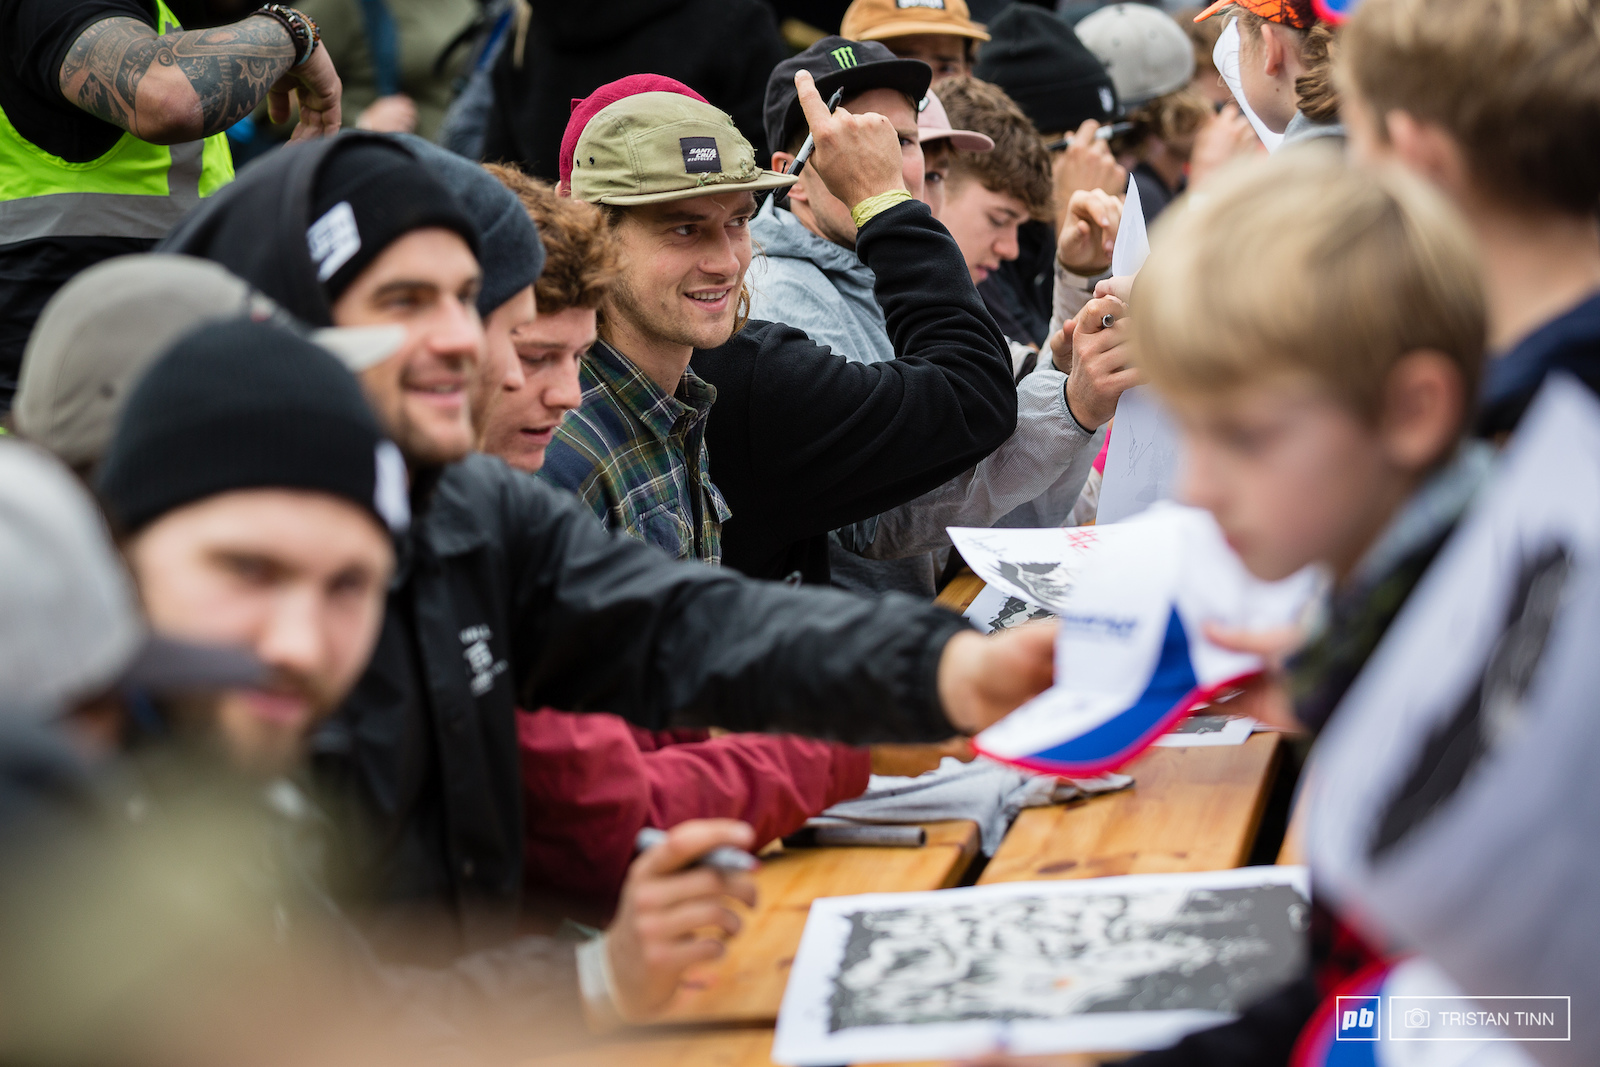 All the athletes made sure to put plenty of time into meeting their fans